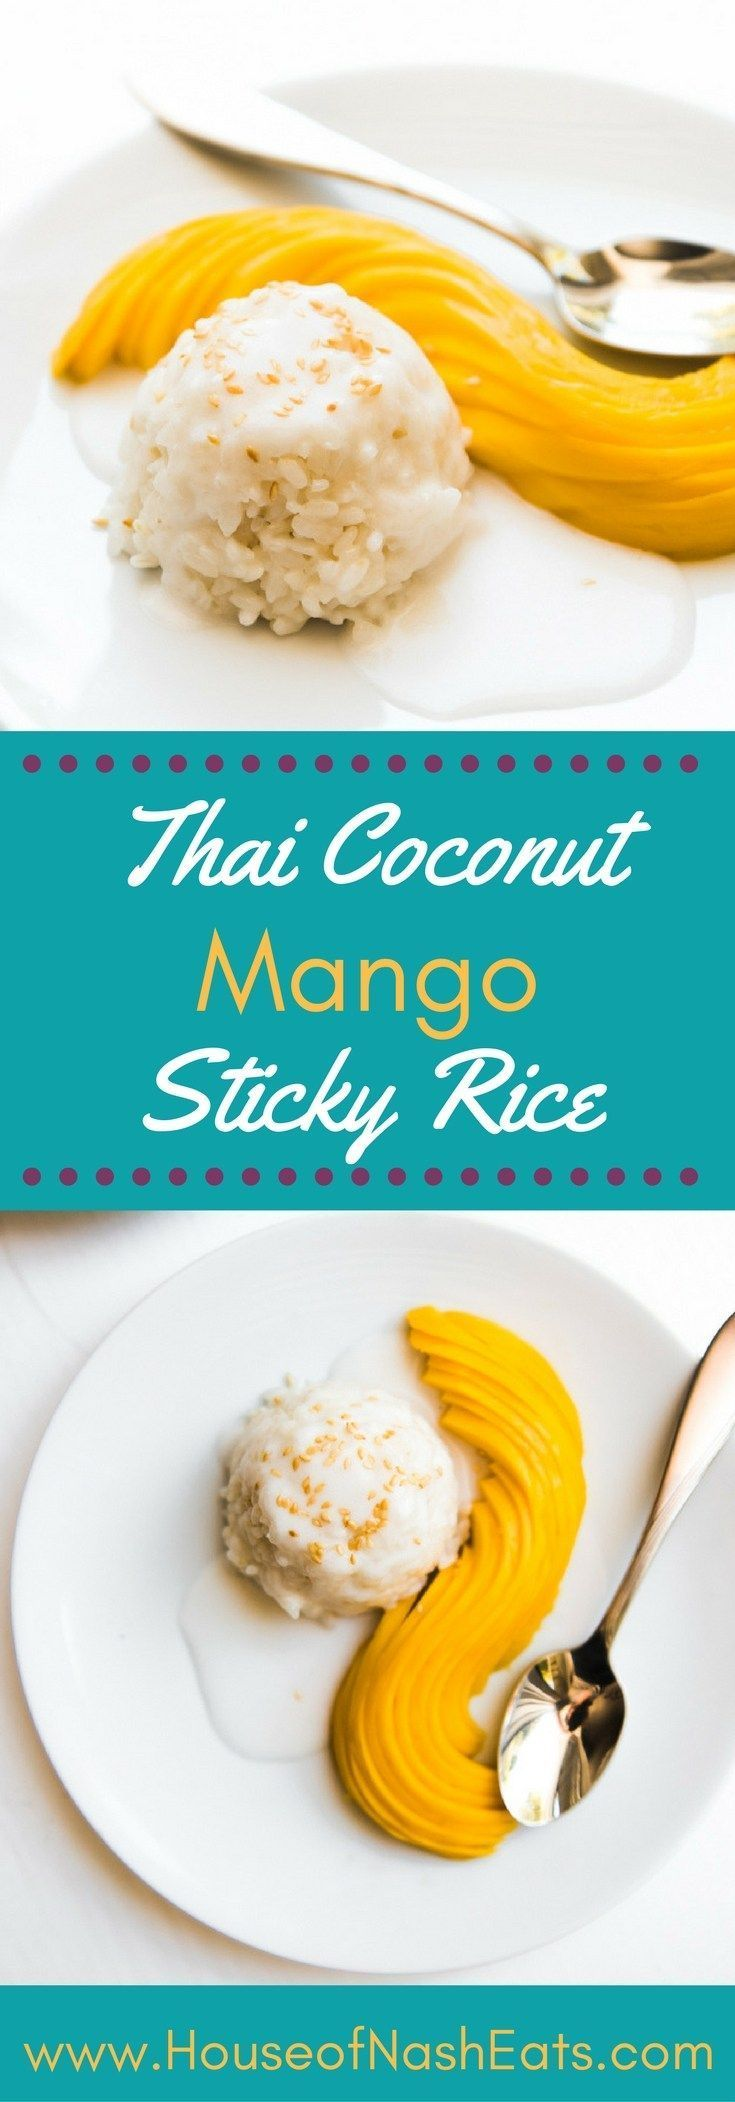 Thai Coconut Mango Sticky Rice is made with sweet, fresh yellow mango, glutinous sticky rice, and an amazing coconut sauce that will transport you right to the tropics! It's a little taste of Thailand that I brought home with me. This fake-out take-out re